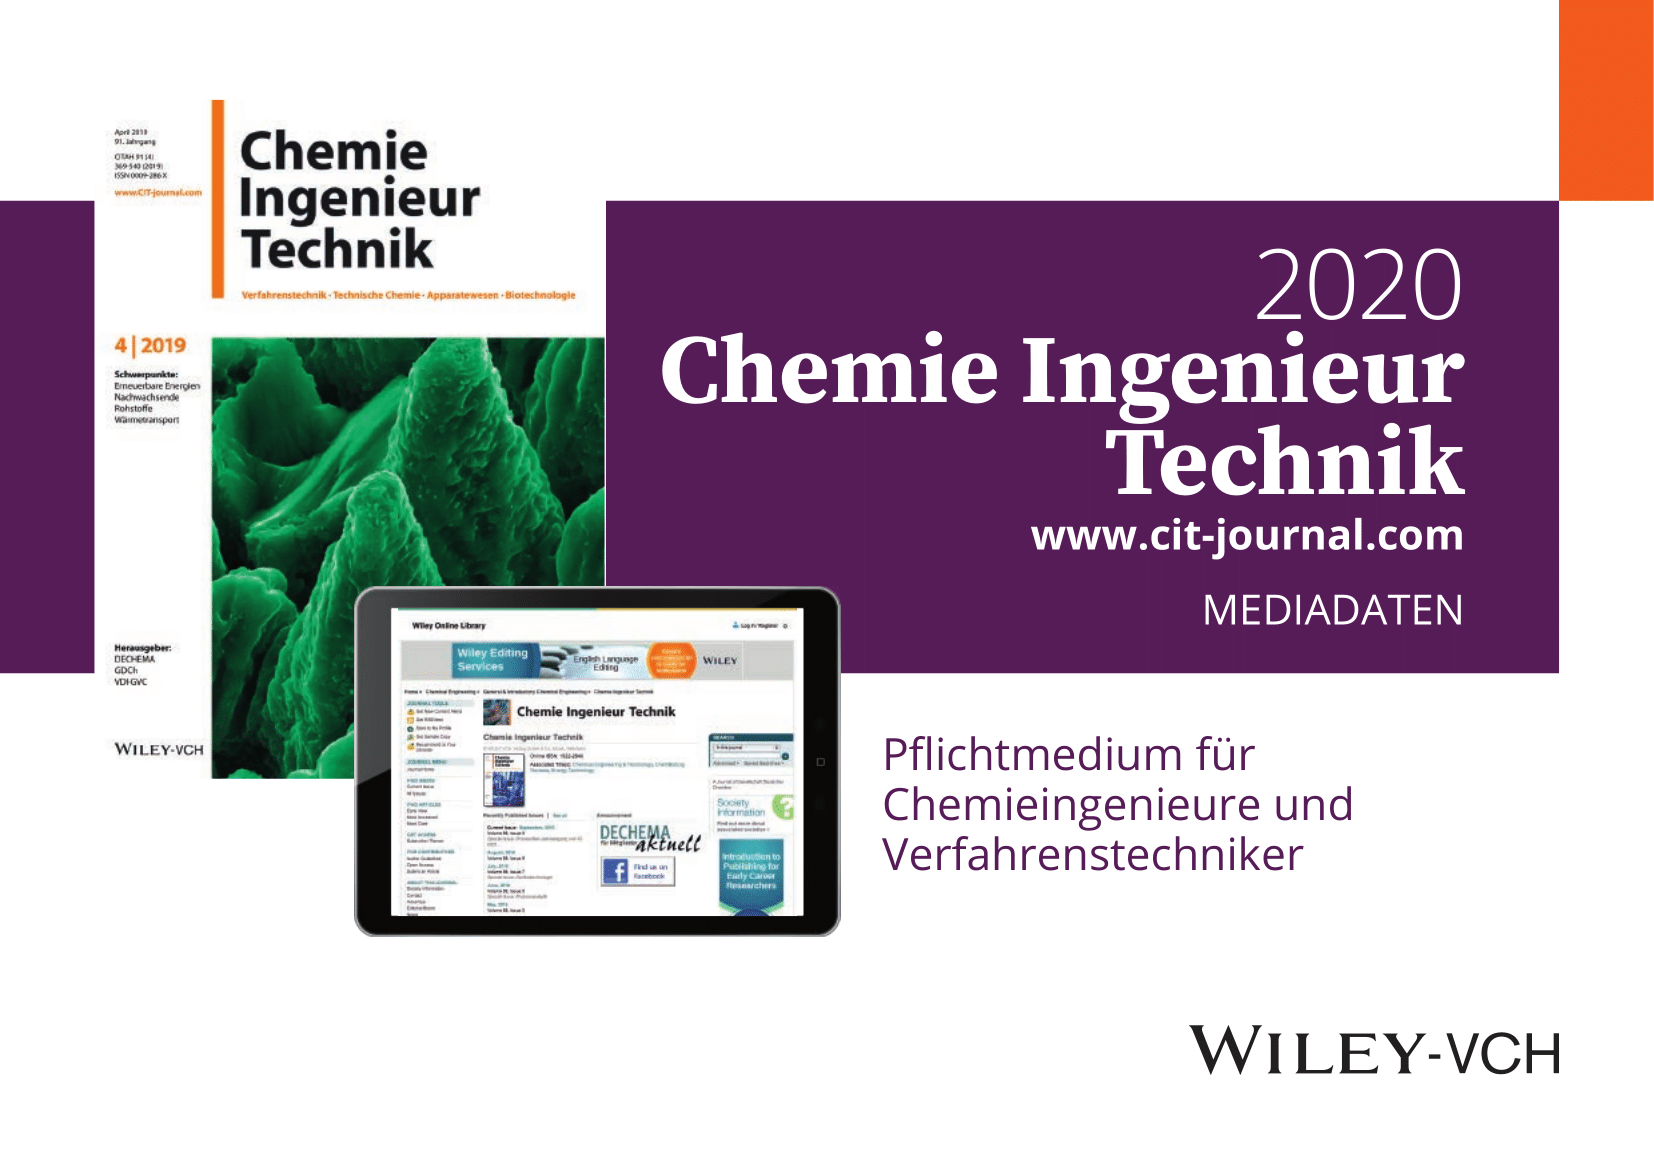 Chemie Ingenieur Technik